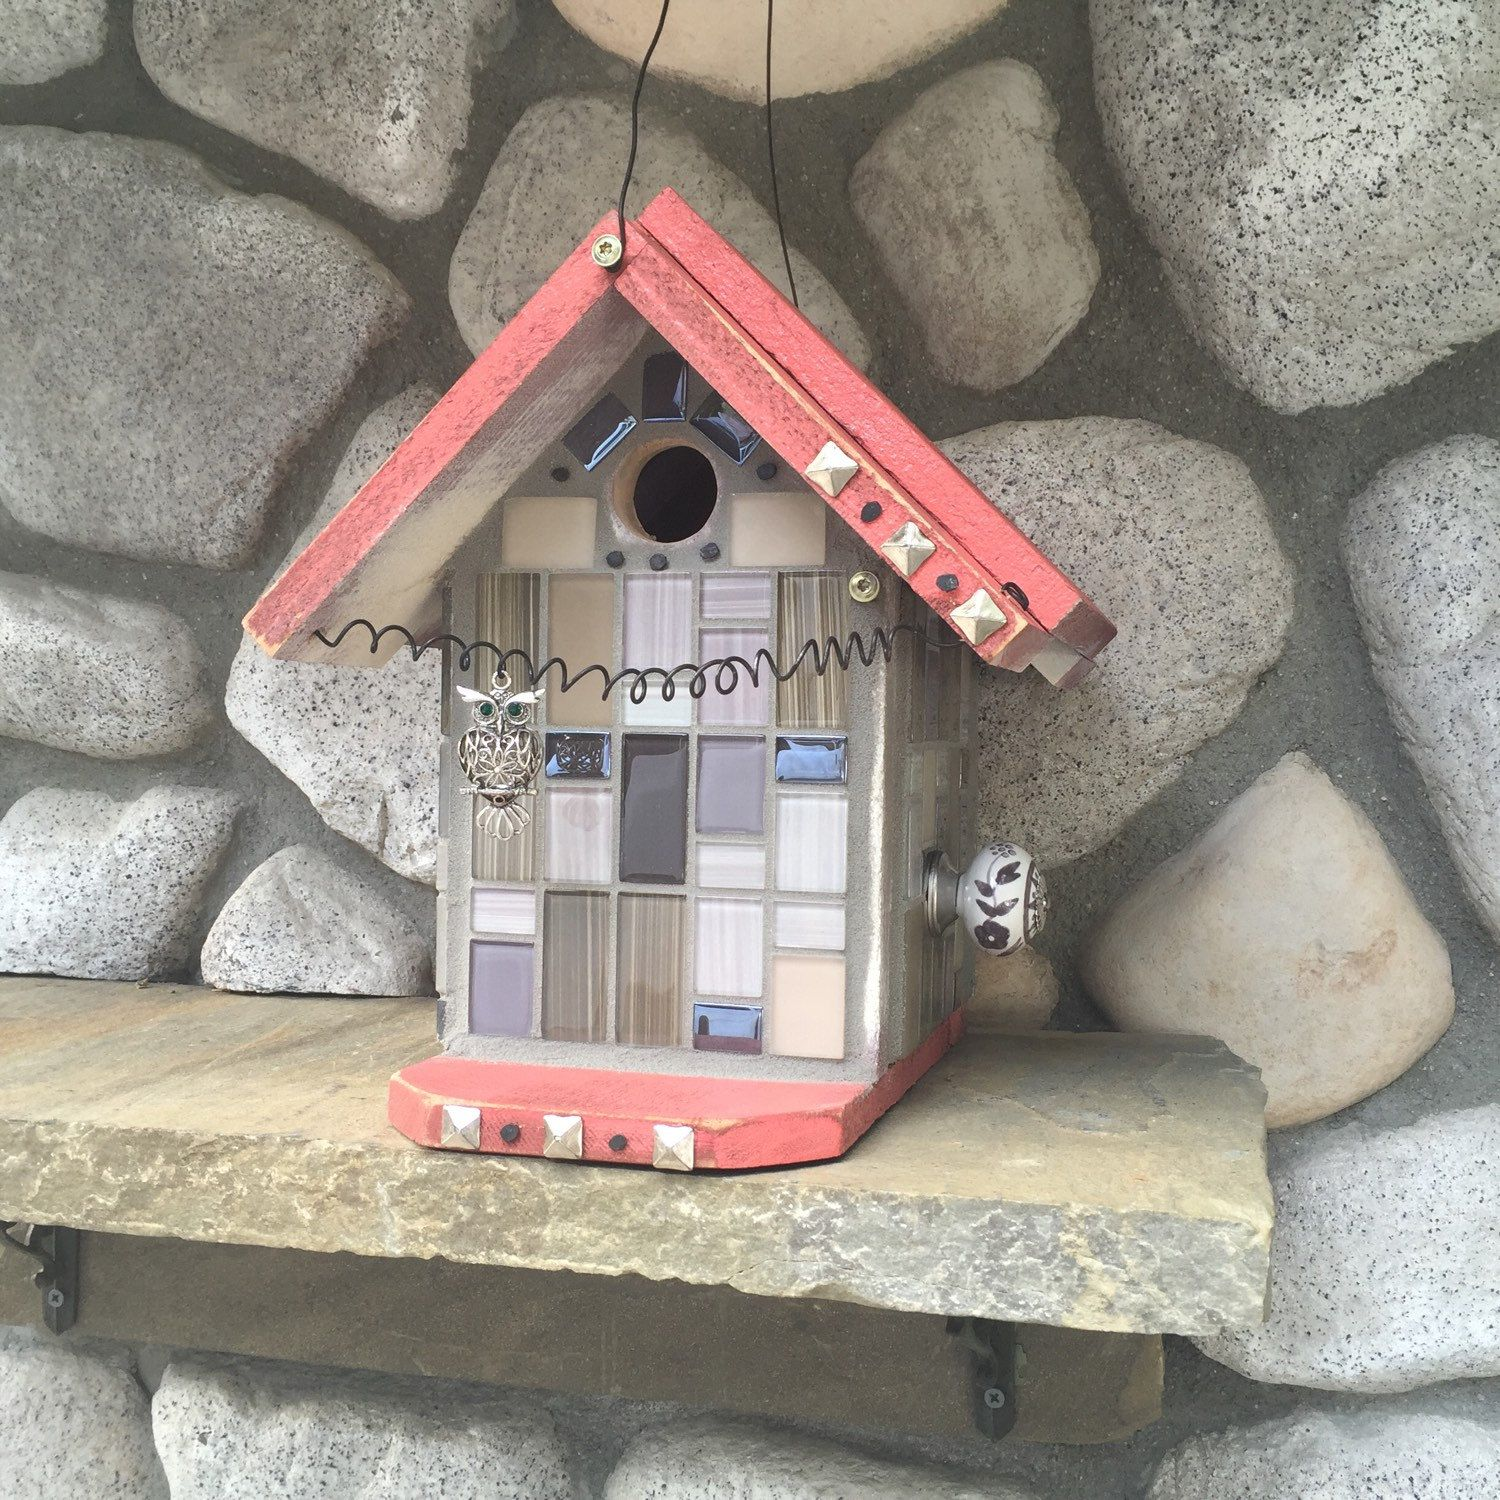 birdhouse, decorative mosaic glass tile hanging bird's nest box